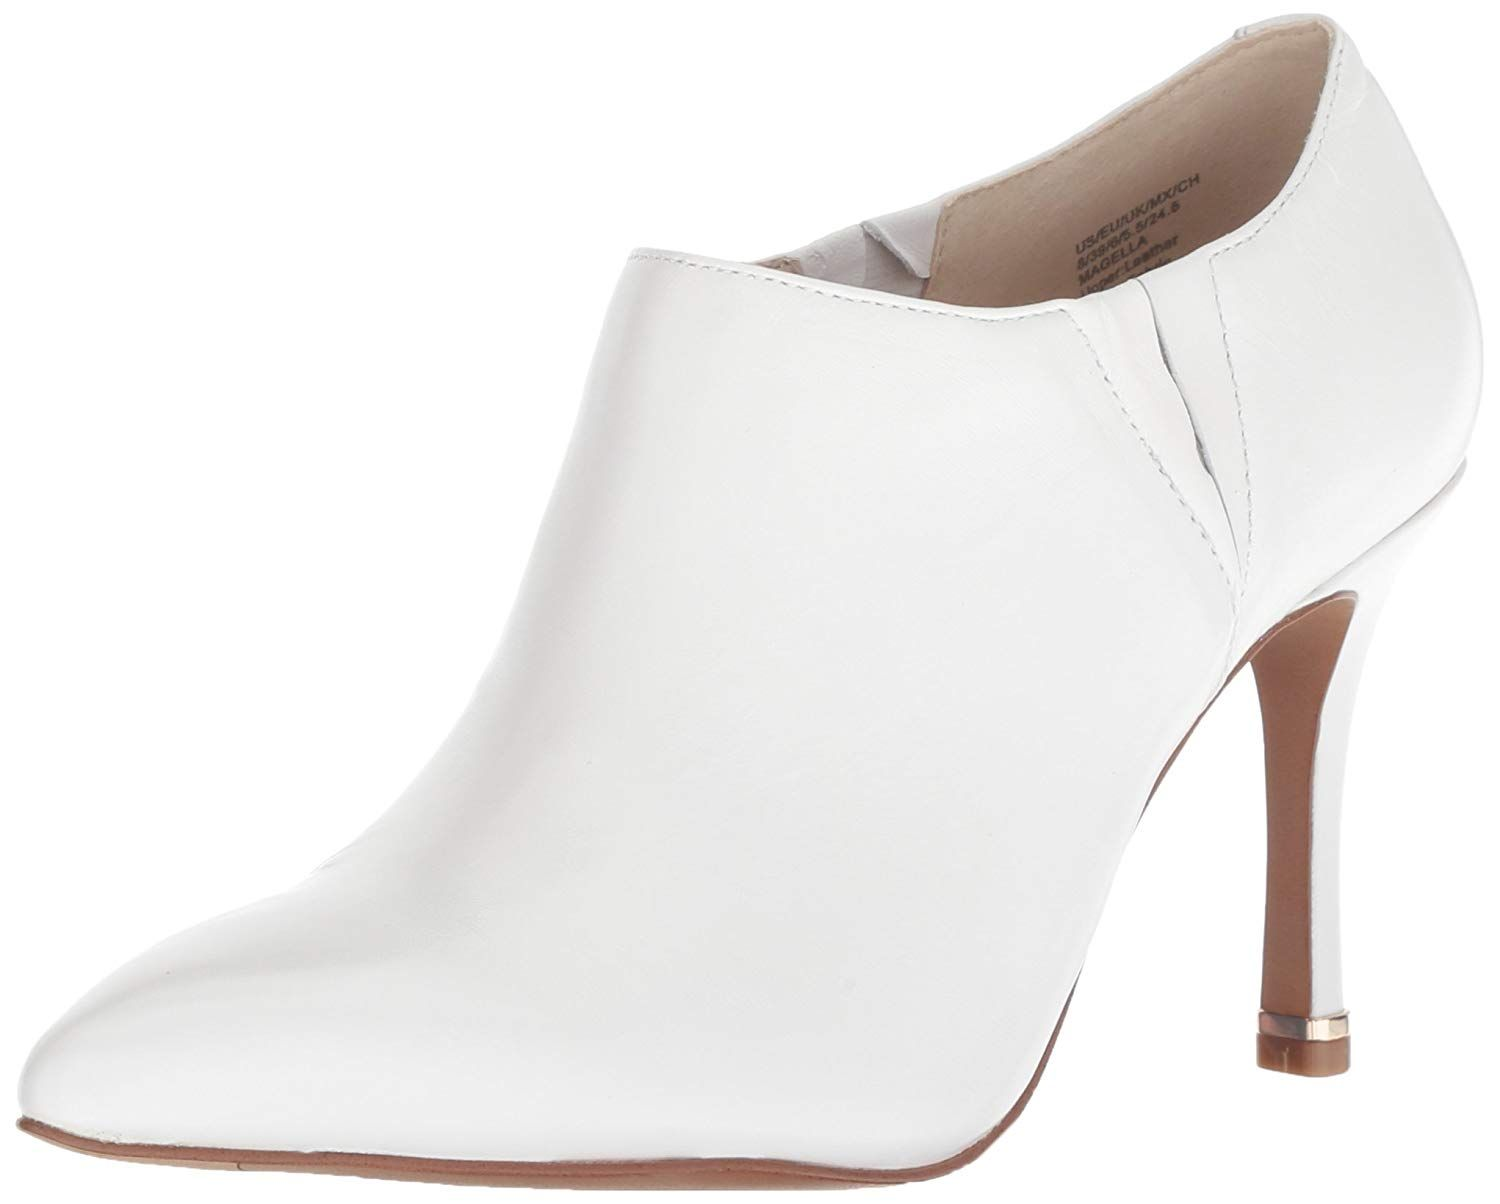 445a75dd8997 Kenneth Cole New York Women s Magella Slip on Heeled Bootie Ankle Boot